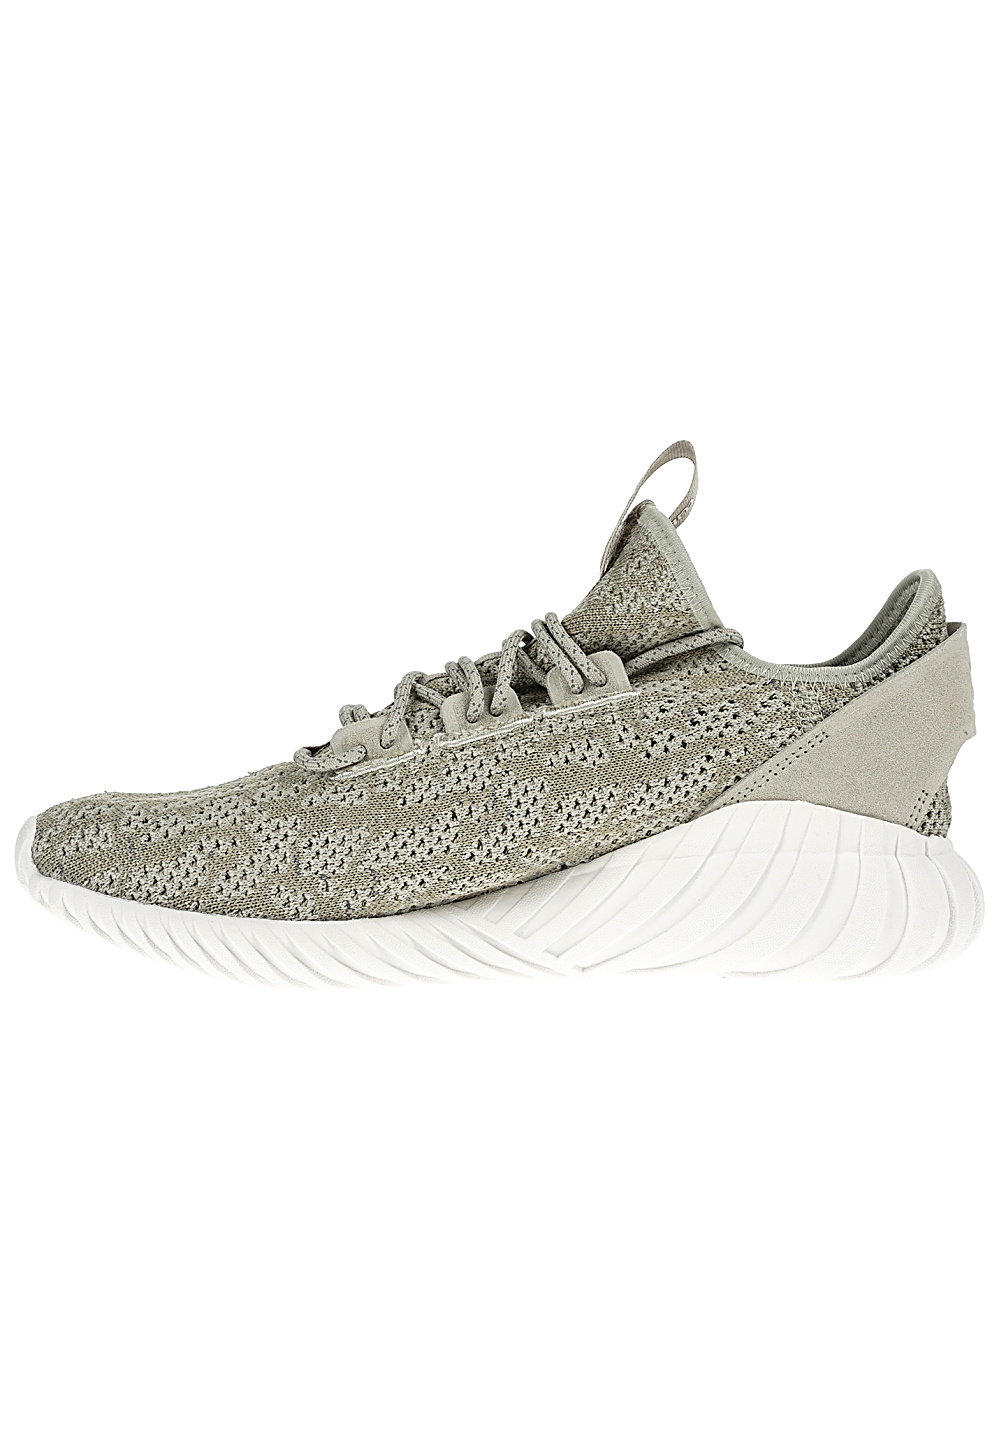 0cb81dfe72bb1 Next. -30%. This product is currently out of stock. ADIDAS ORIGINALS. Tubular  Doom Sock Primeknit - Sneakers for Men